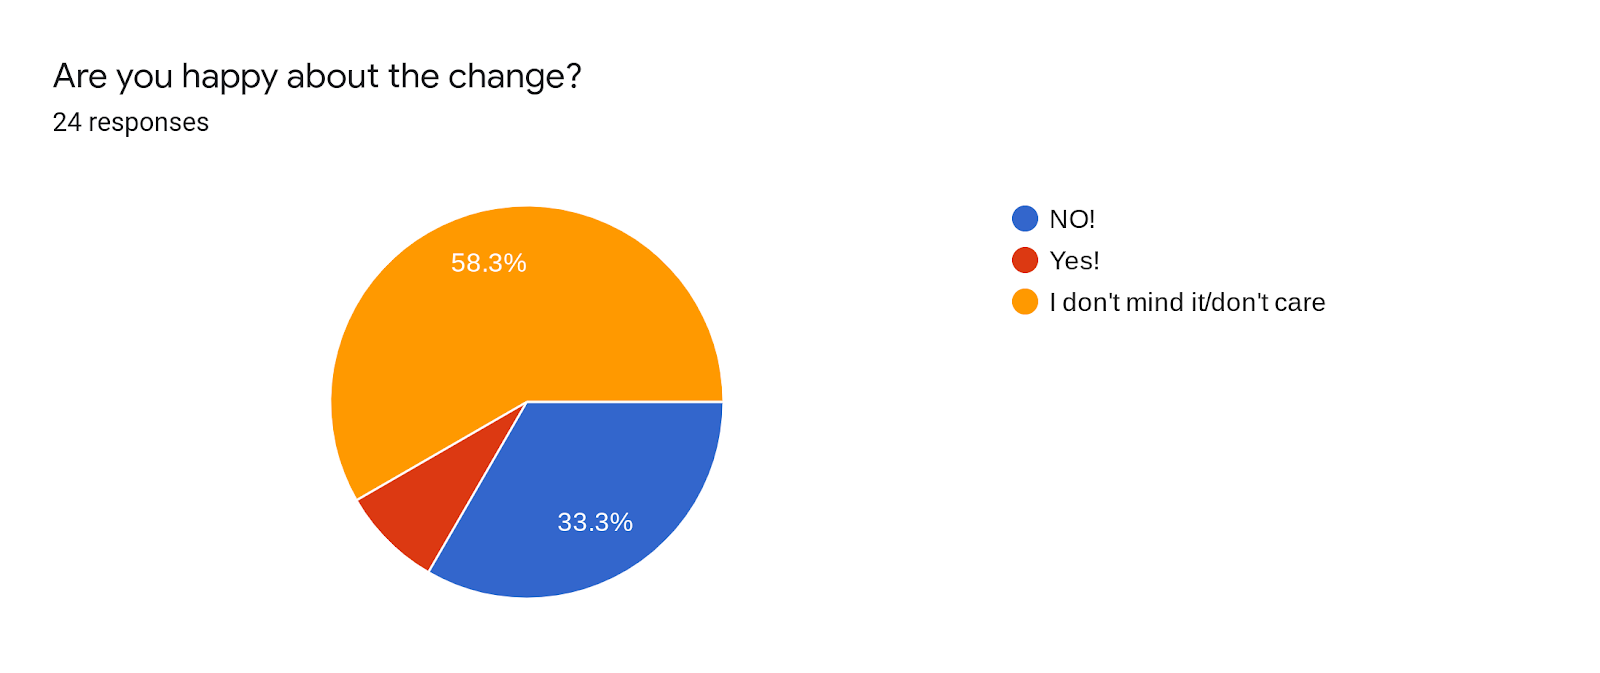 Forms response chart. Question title: Are you happy about the change?. Number of responses: 24 responses.